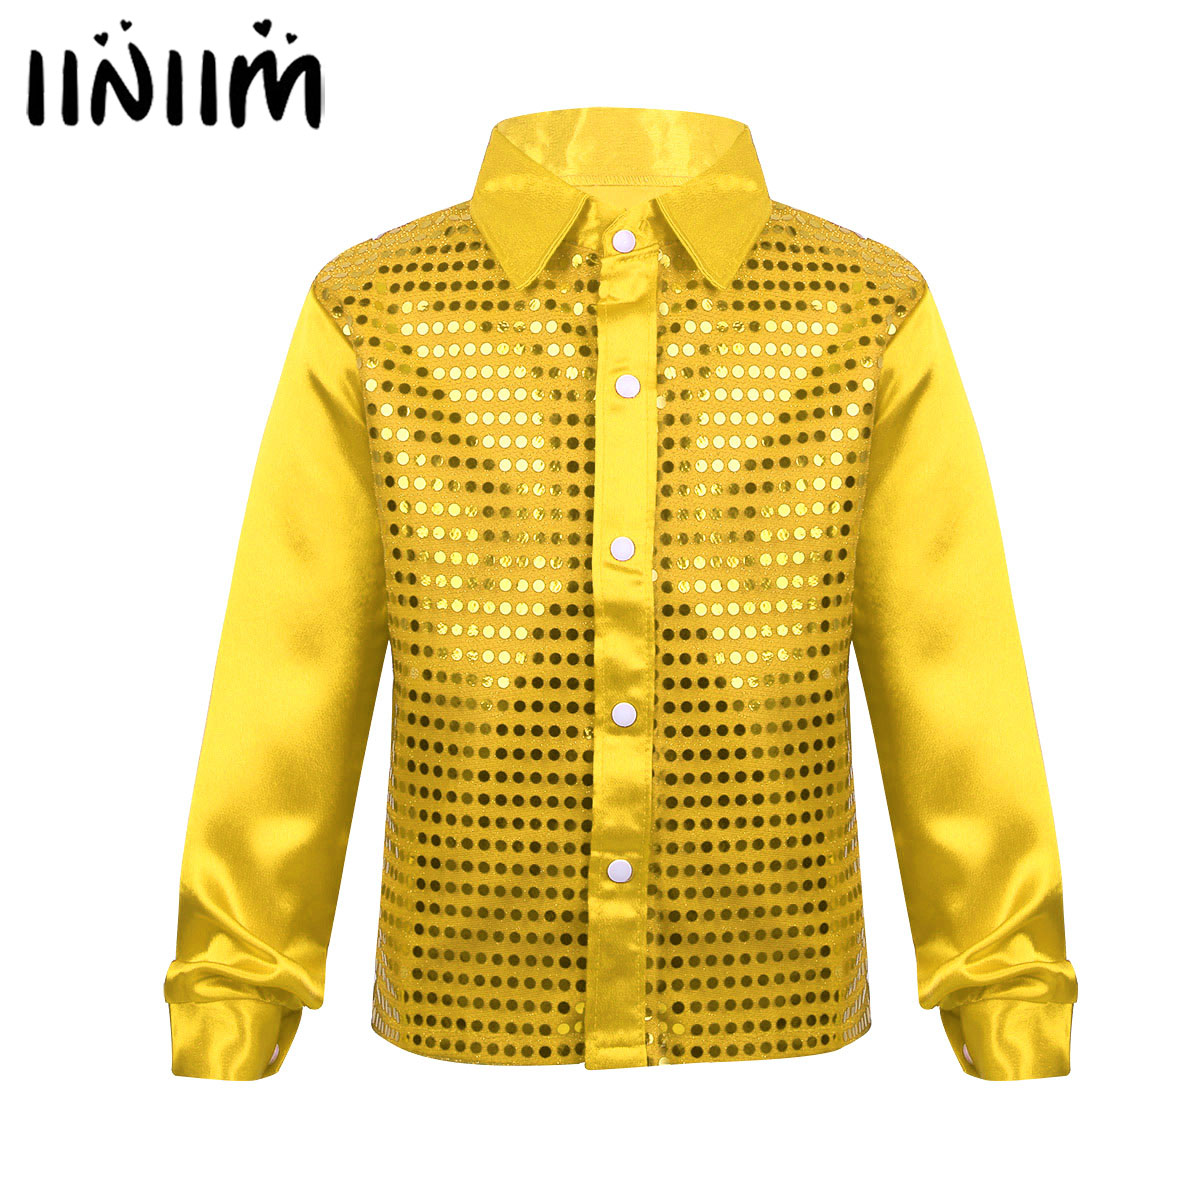 Iiniim Kids Boys Jazz Glittery Sequined Performance Dance Wear Spread Collar Shirt For Choir Jazz Latin Lyrical Dance Costumes